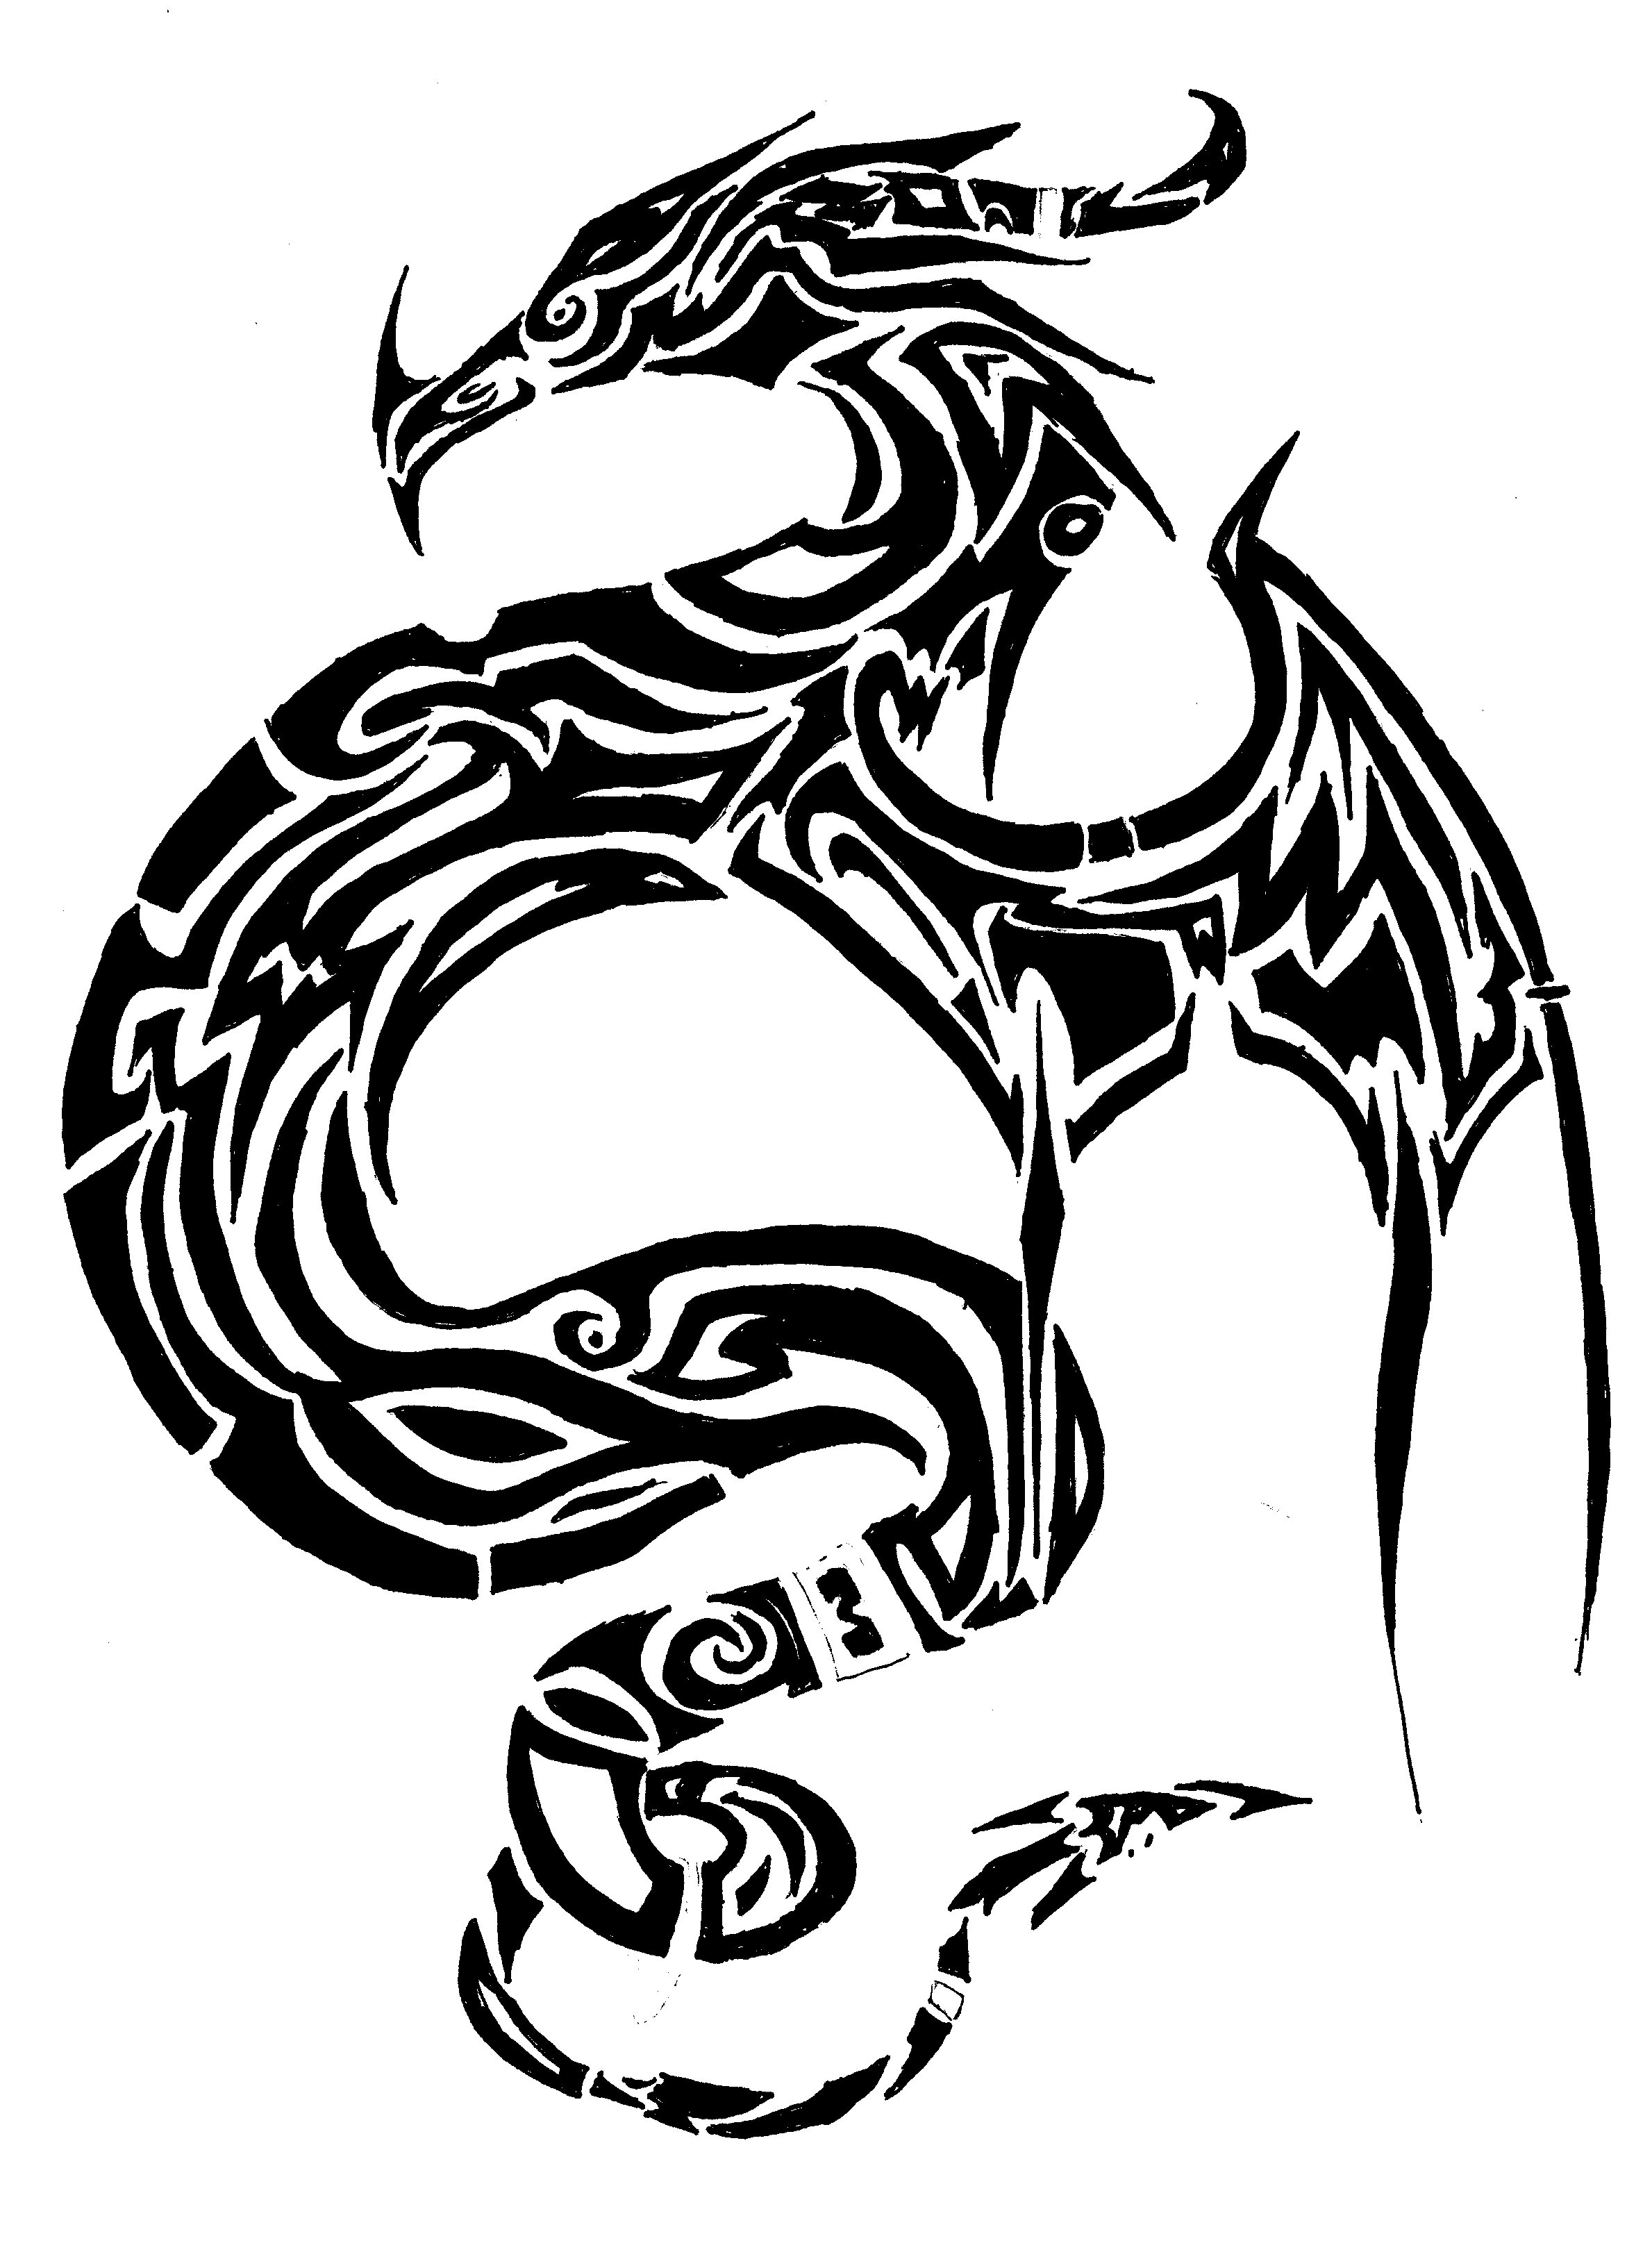 Dragon Free Images At Clker